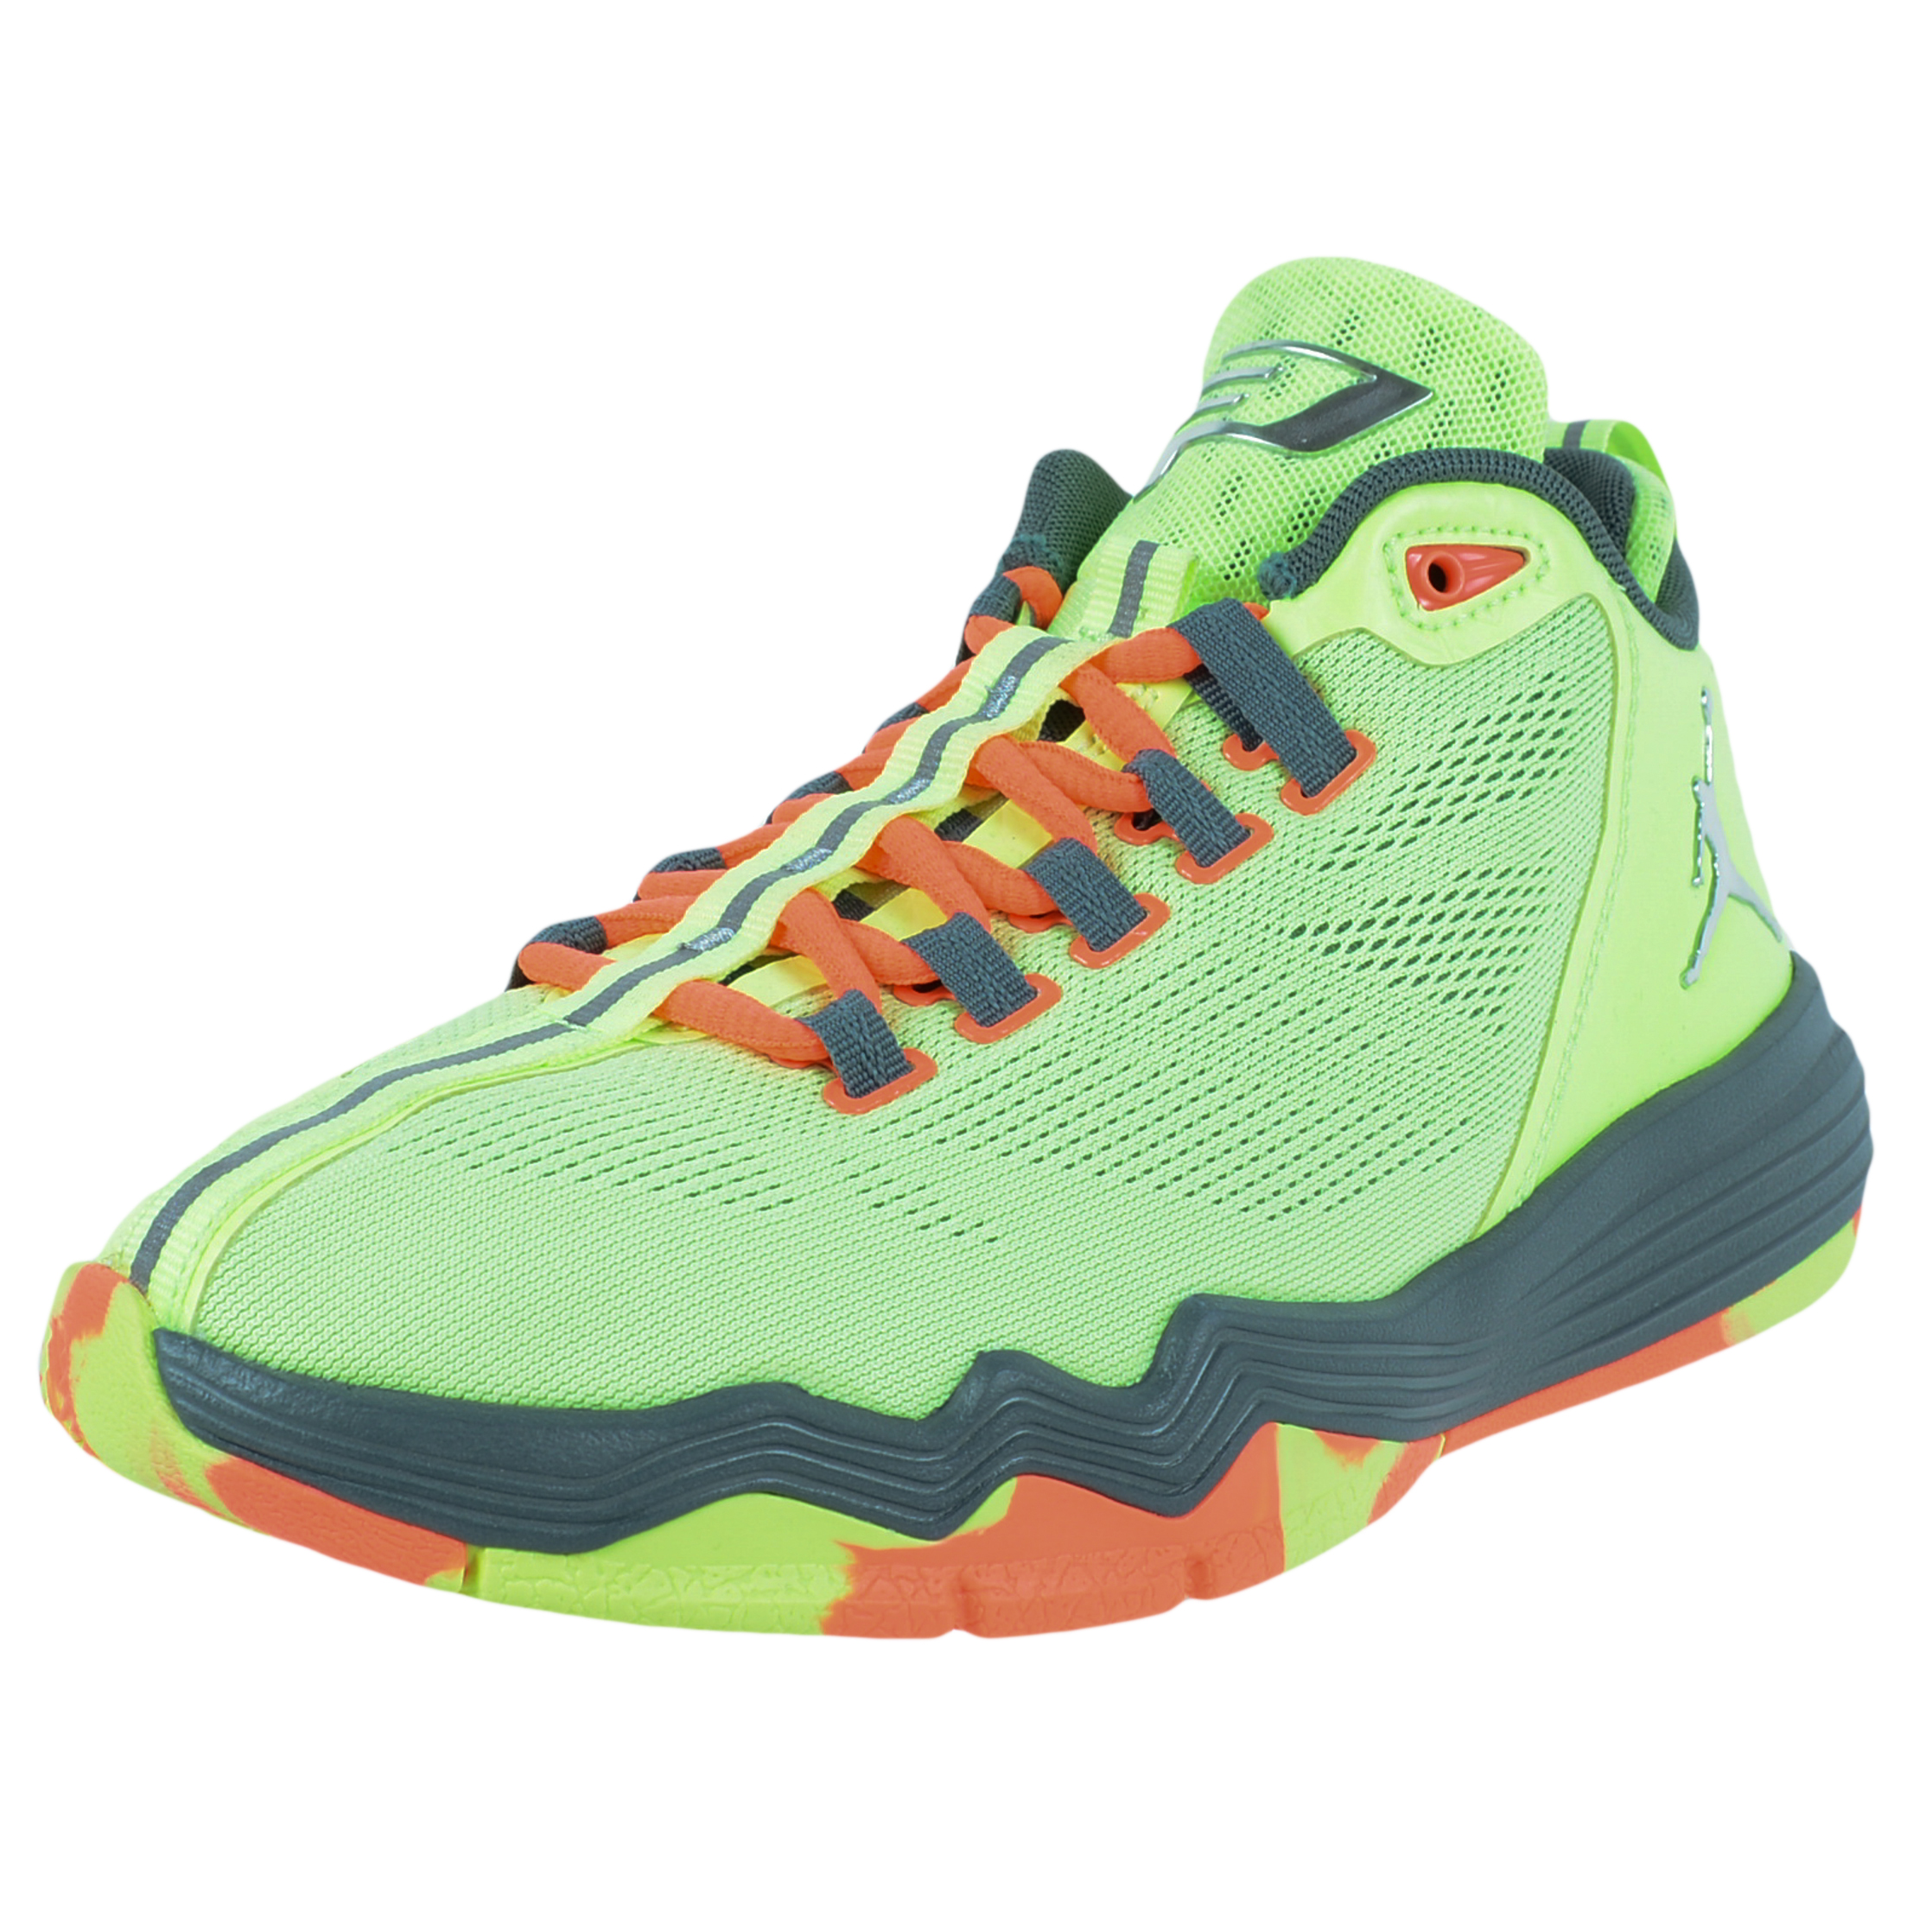 78297376d607d closeout air jordan cp3 ix sølv orange 0790f 0c9b2